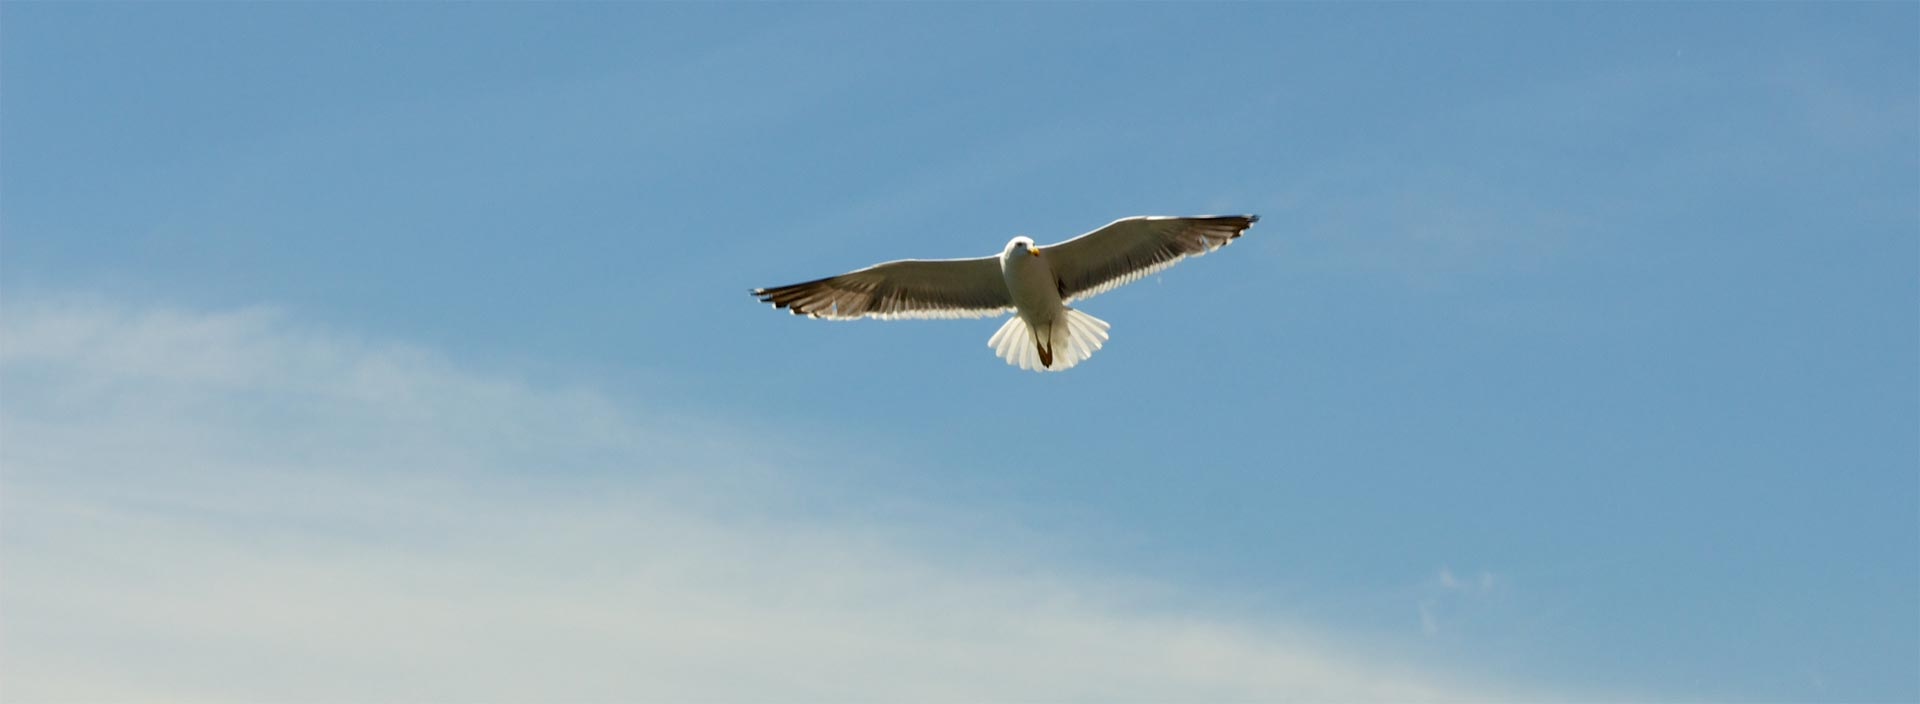 Eagle soaring in blue sky with clouds